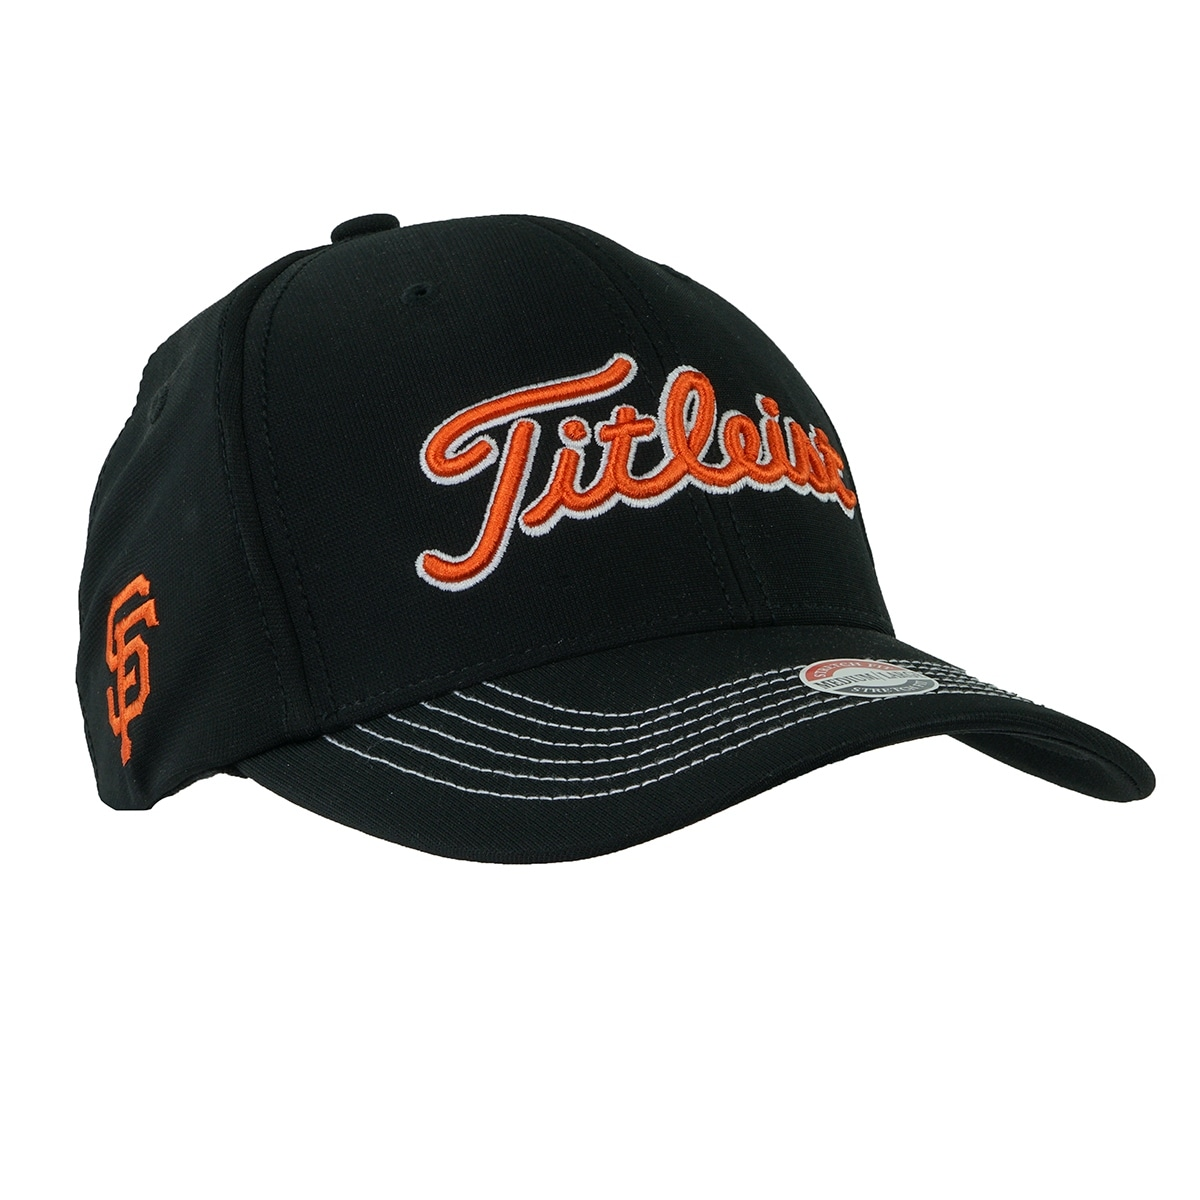 Shop Titleist Men s Professional Performance Hat Giants - Black Orange -  M L - Free Shipping On Orders Over  45 - Overstock.com - 25669335 9ad6d879860